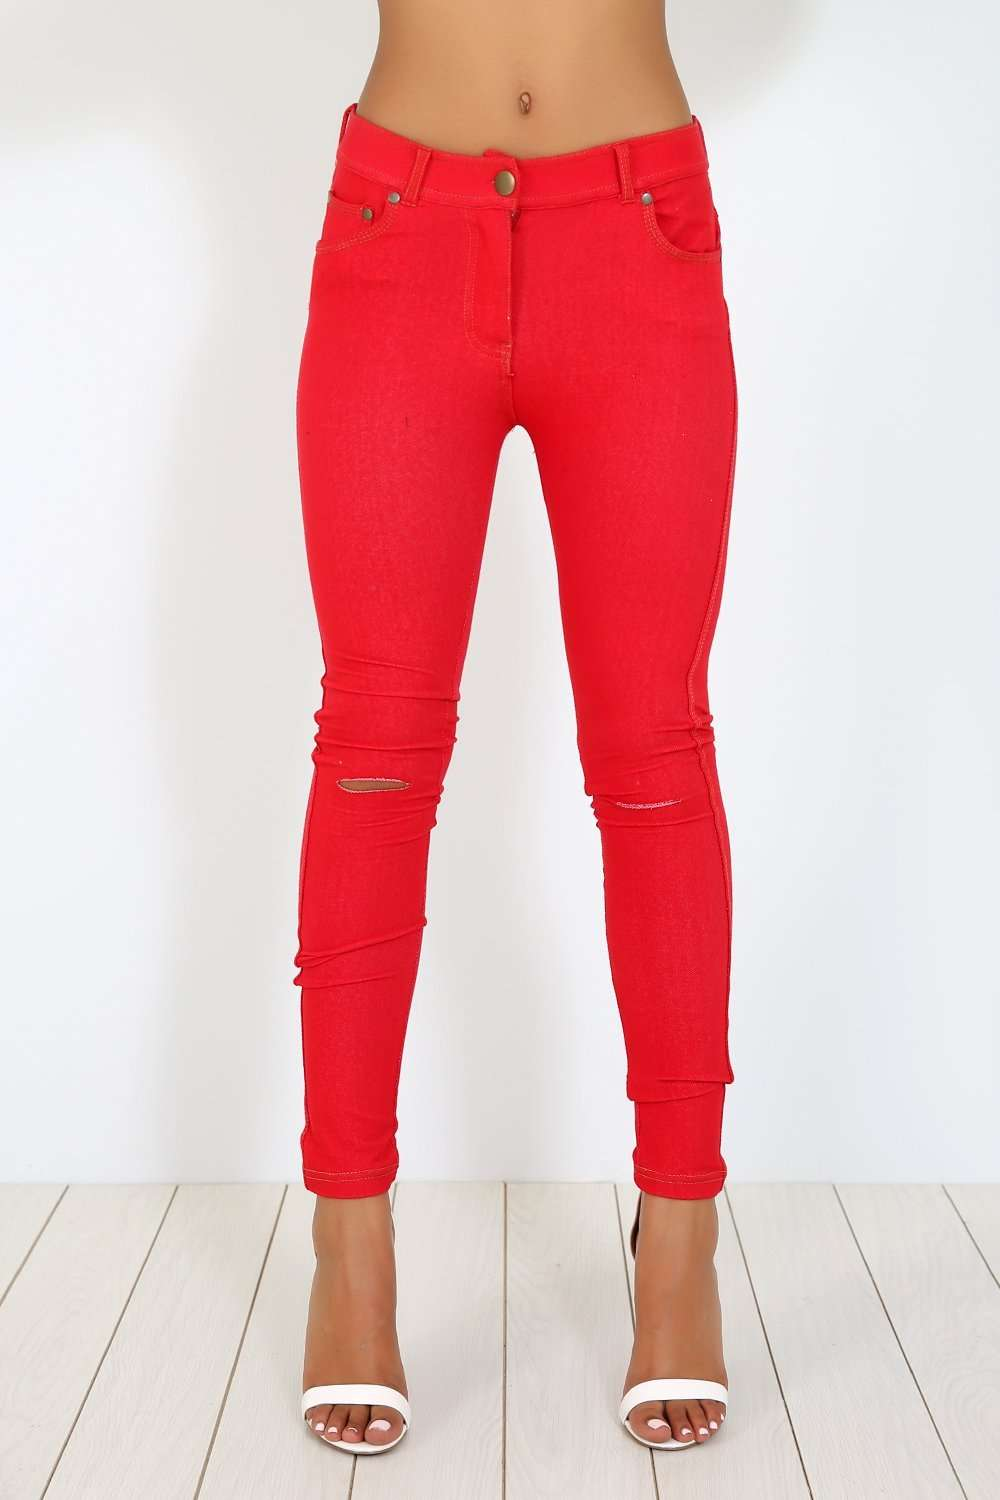 Chesca Ripped Knee Denim Skinny Jeggings - bejealous-com